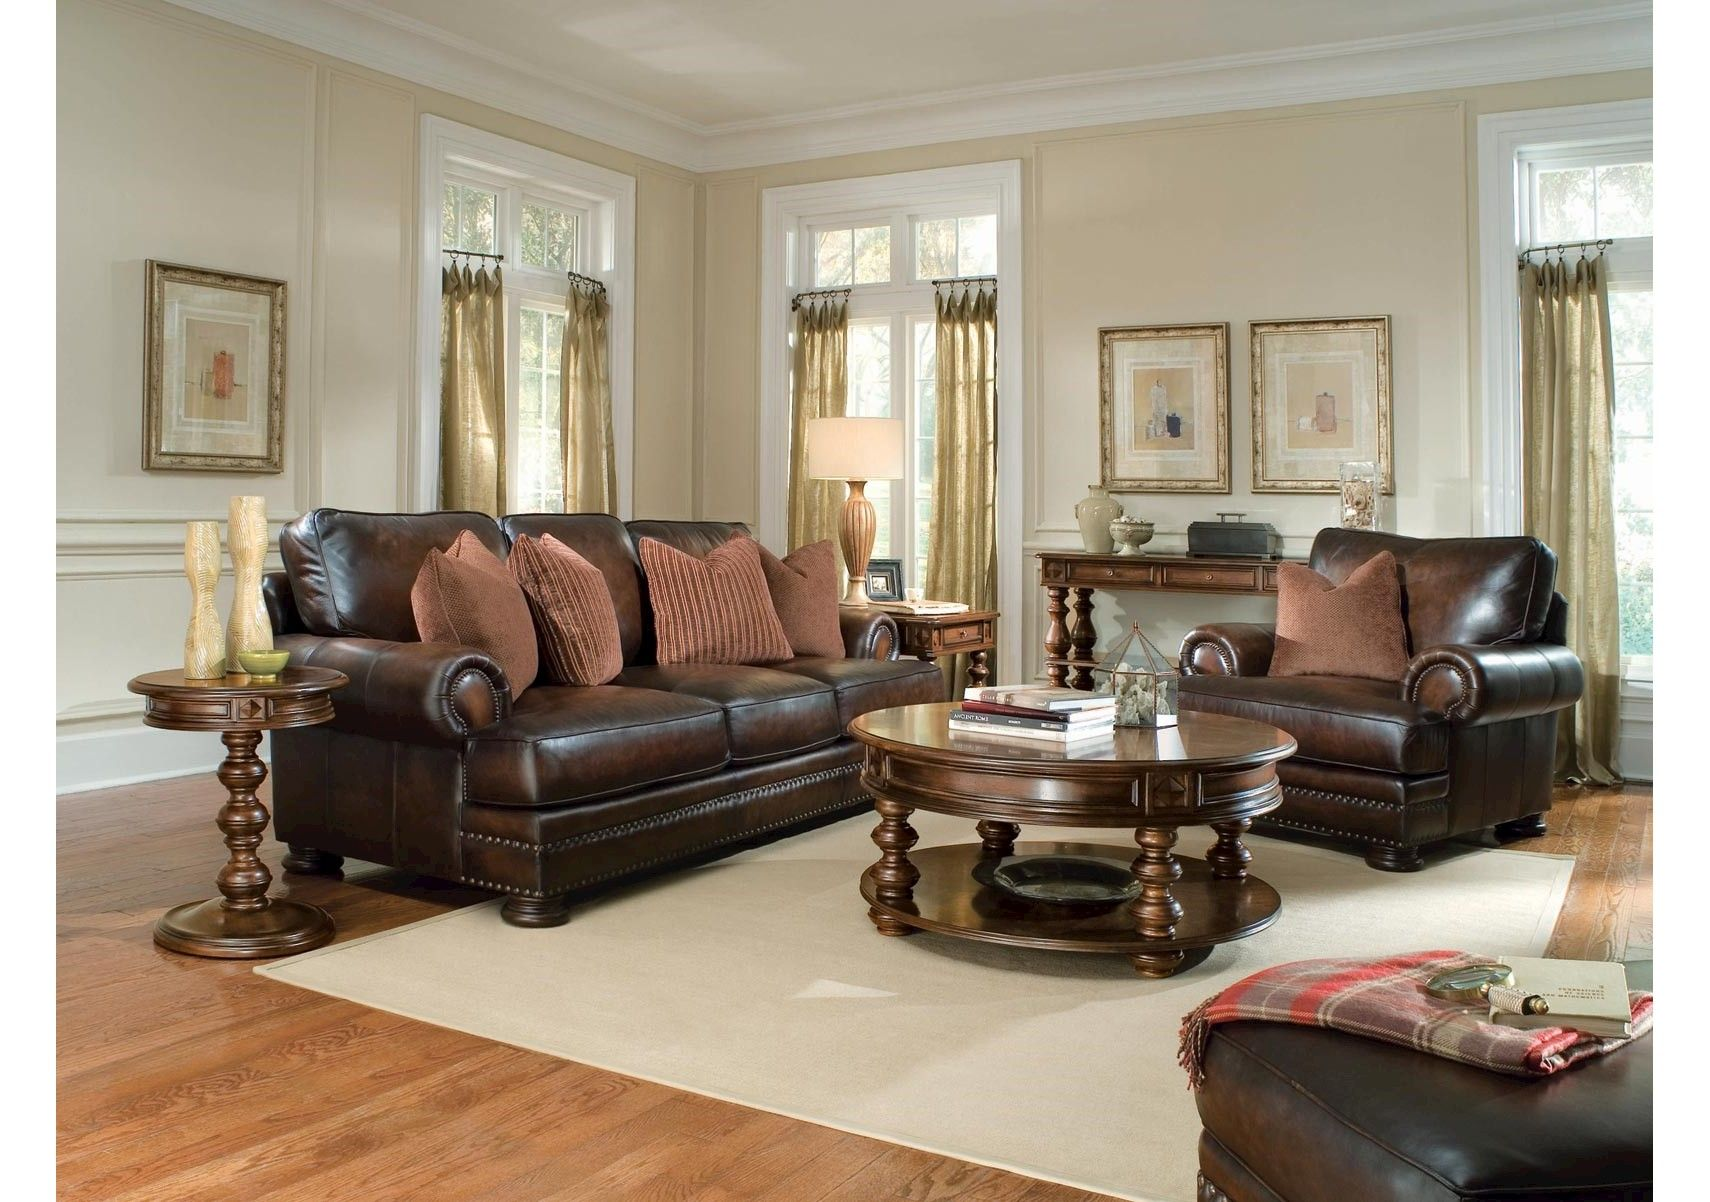 Living Room Set Home Decor Furniture